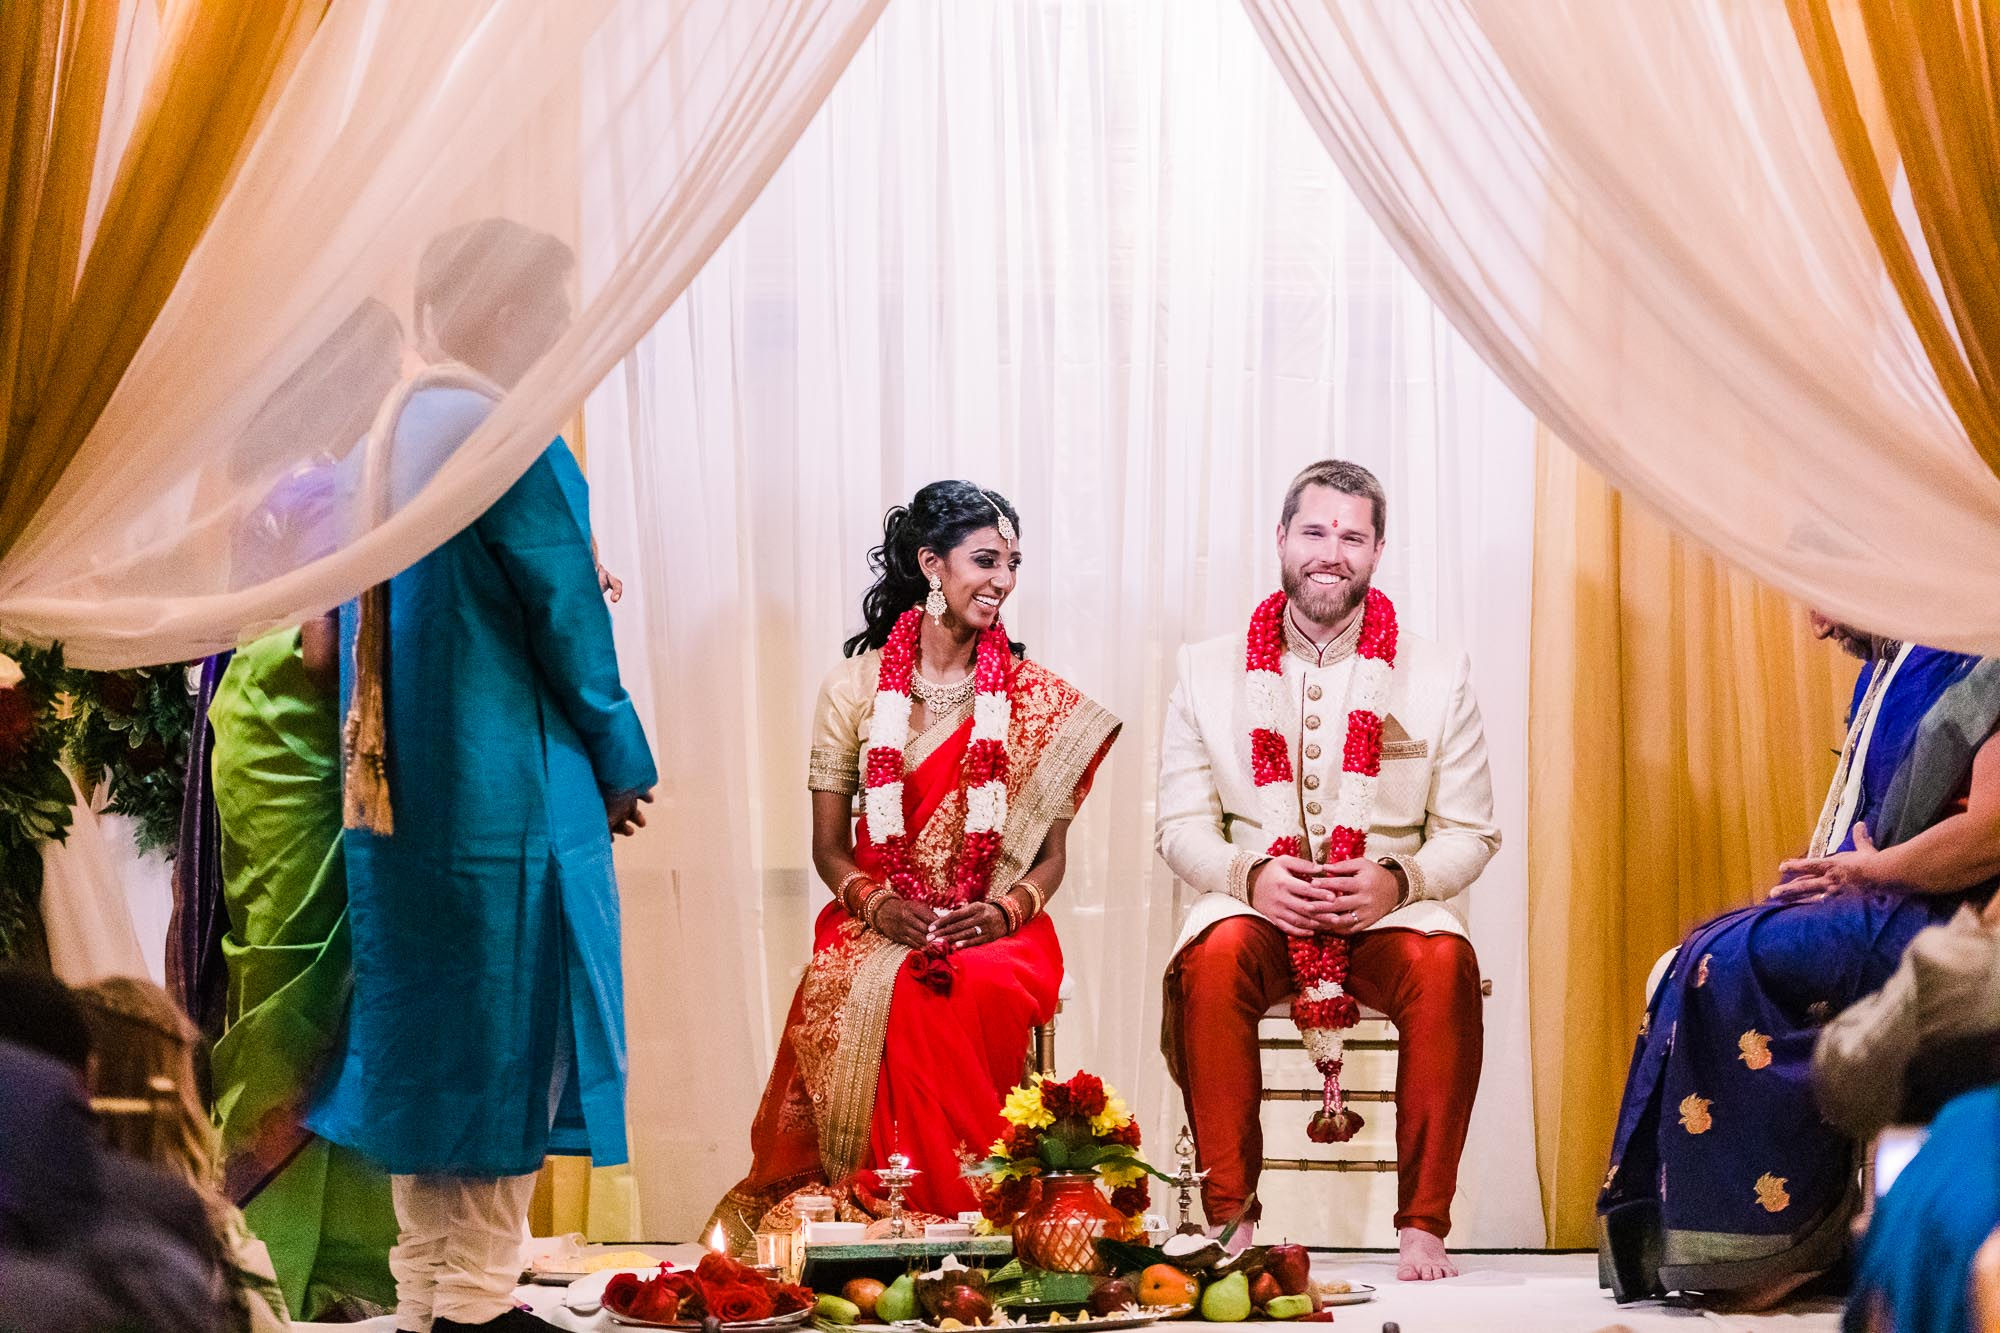 Scranton_Radisson_Hindu_Wedding-8921.jpg